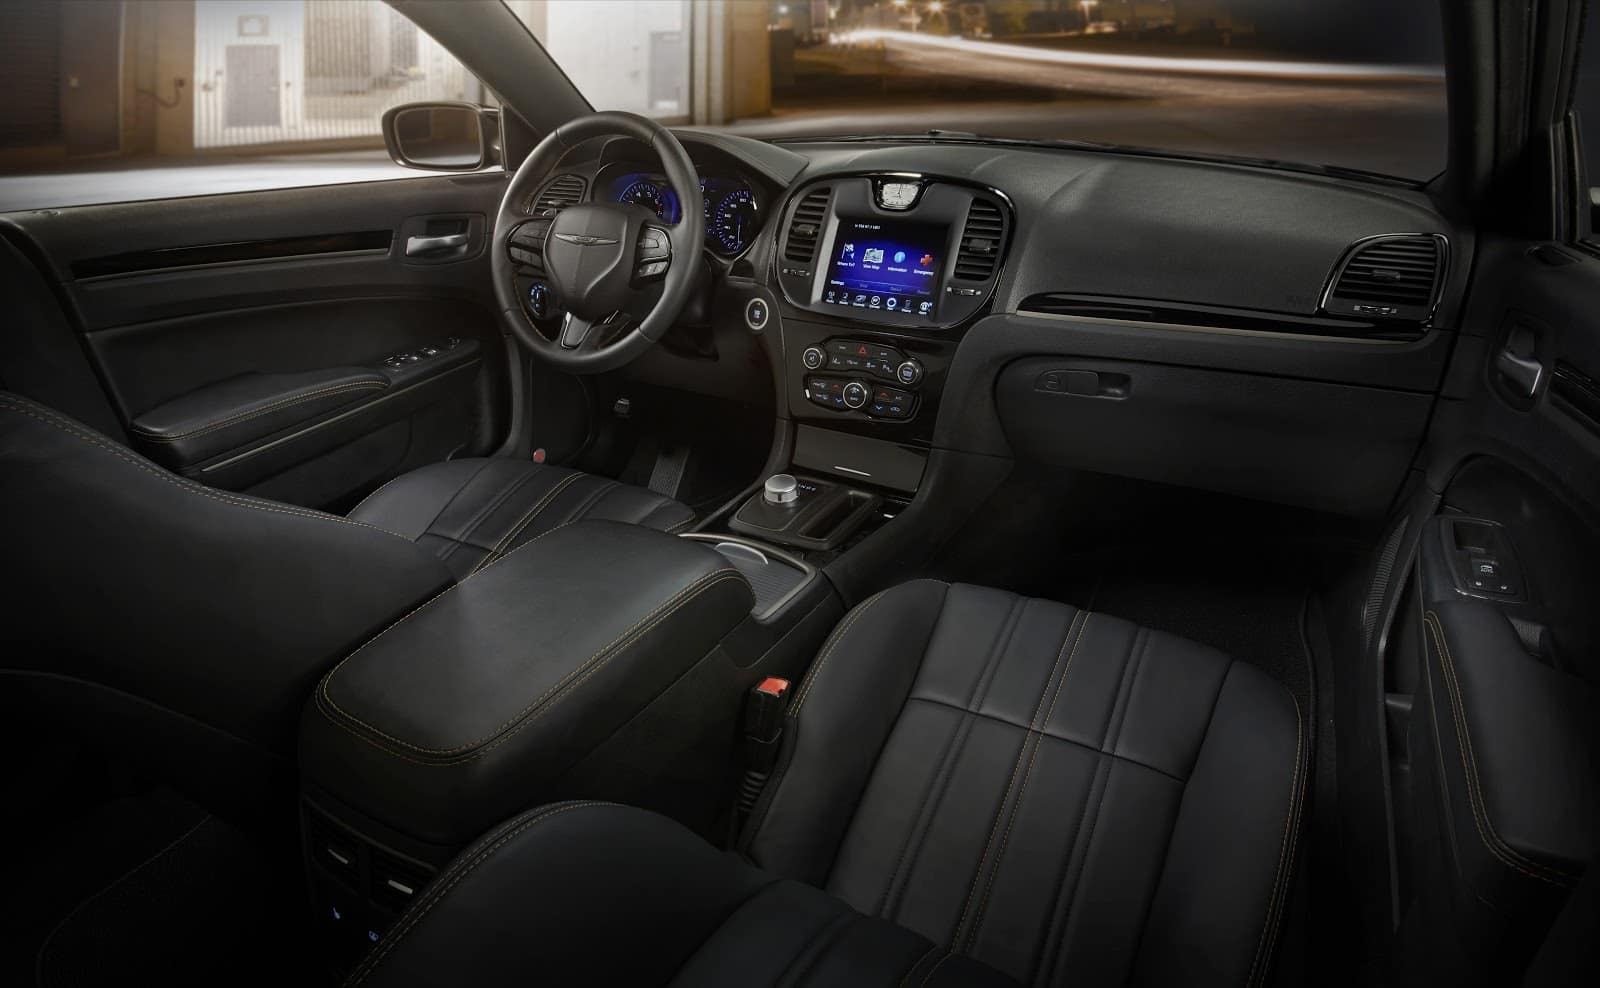 Black Leather 2019 Chrysler 300 Interior From Back Seat View Showing Digital Cluster Display and more